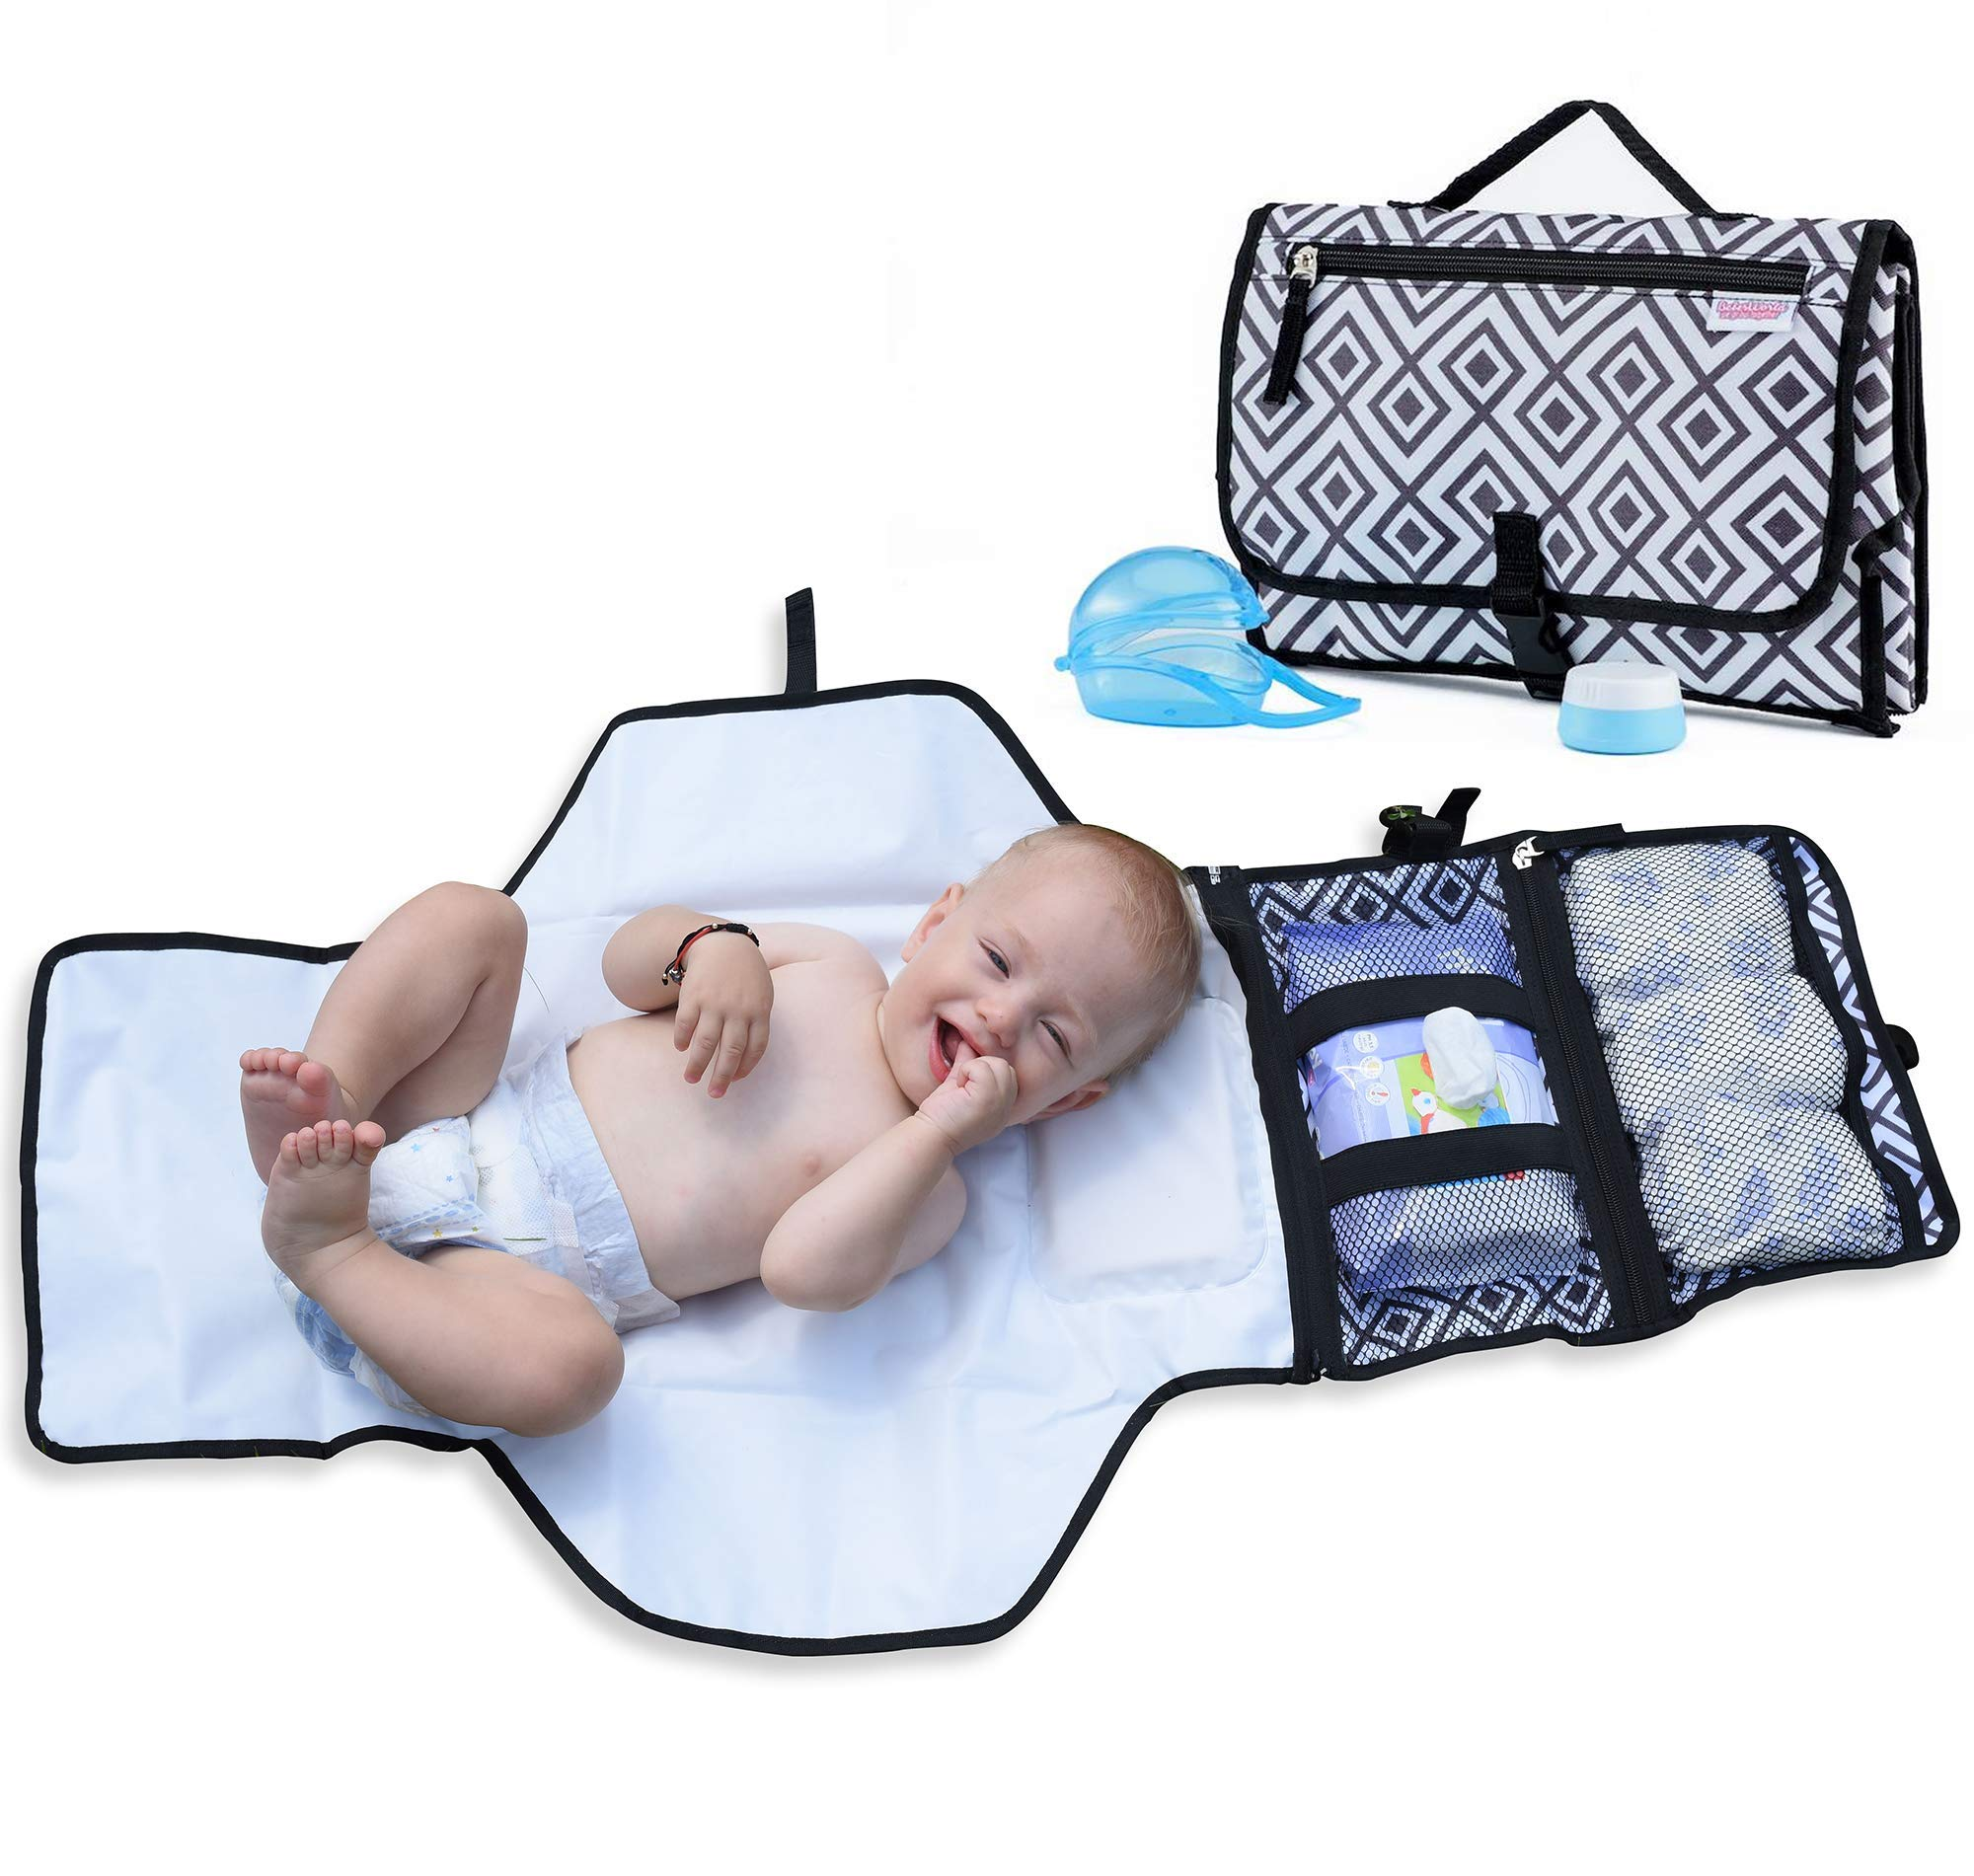 Portable Changing Pad for Diaper Bag w/Head Pillow, Travel Changing Pad & Portable Changing Station | Plus Binky Case & Baby Cream Jar | Infants & Newborns | Grey Black Diaper Changing Pad Portable by BebesWorld